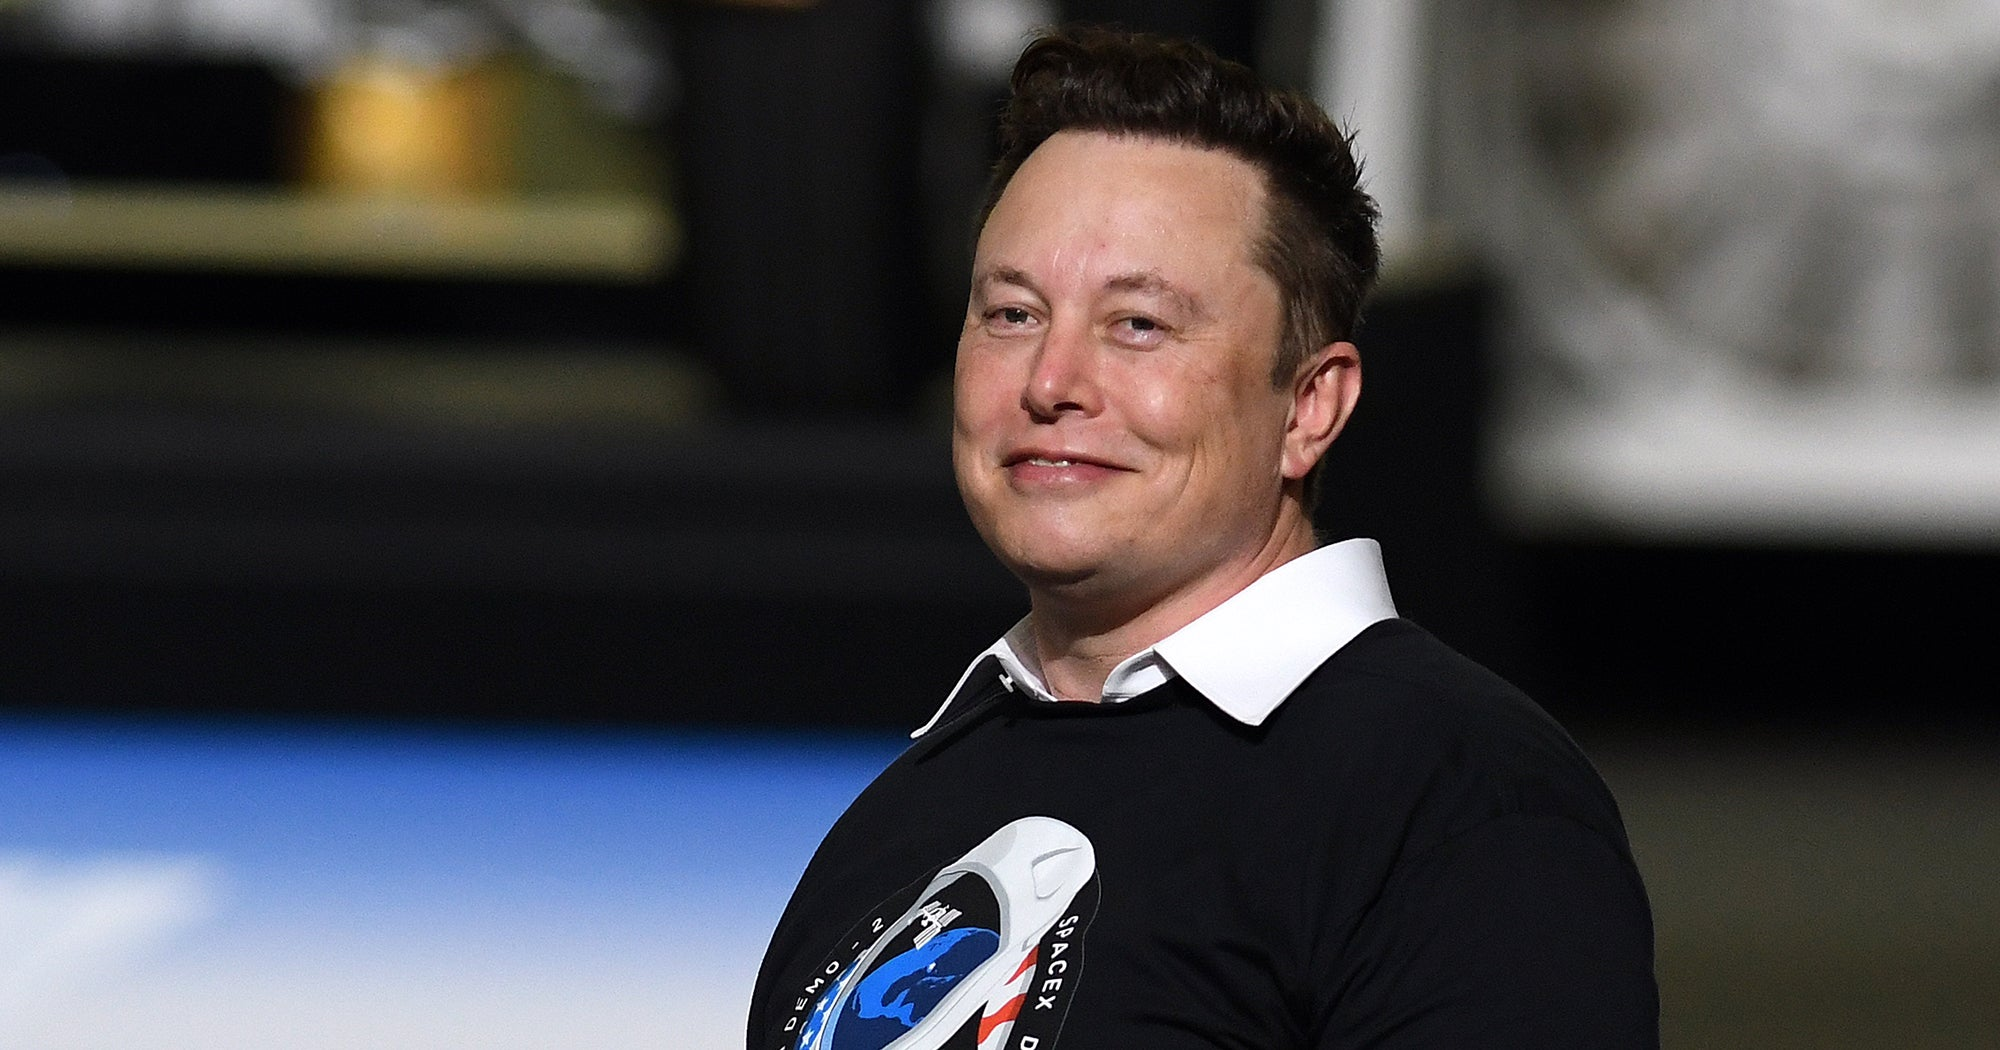 SNL Shouldn't Be A Playground for Billionaires Like Elon Musk